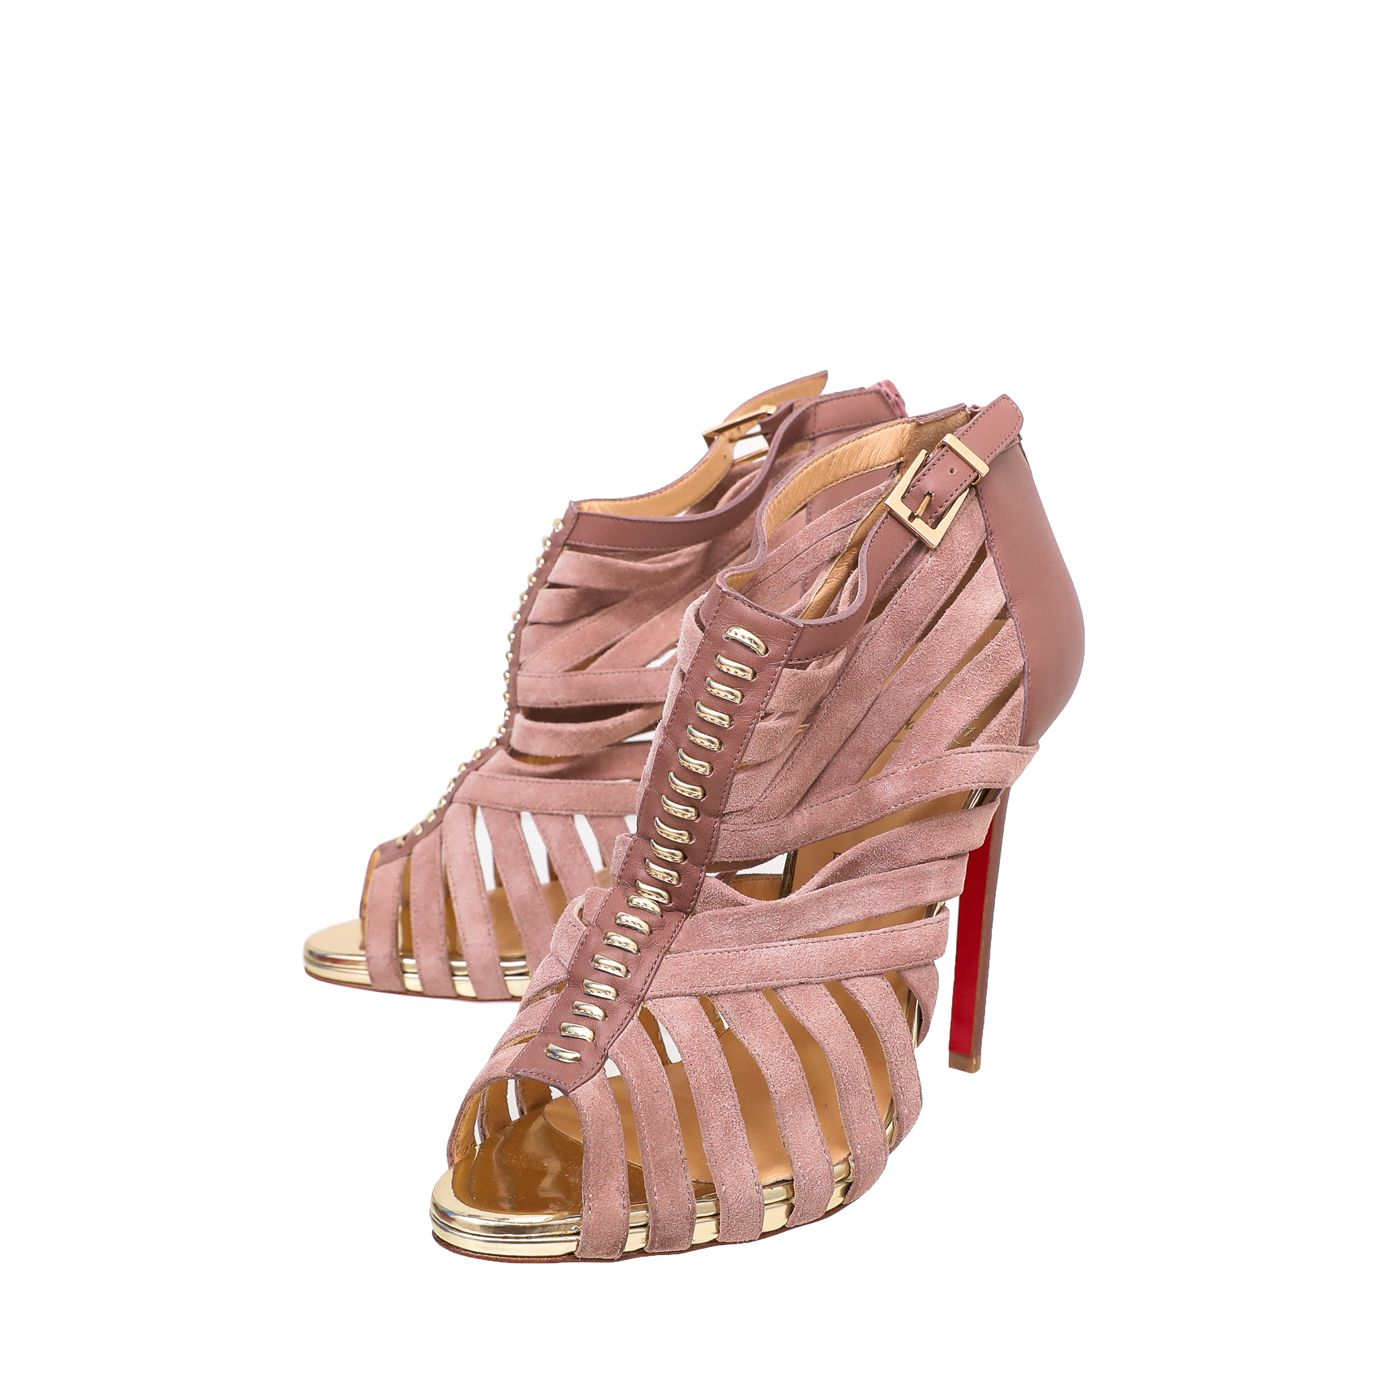 Christian Louboutin Light Rosewood Karina Caged Ankle Bootie 40.5